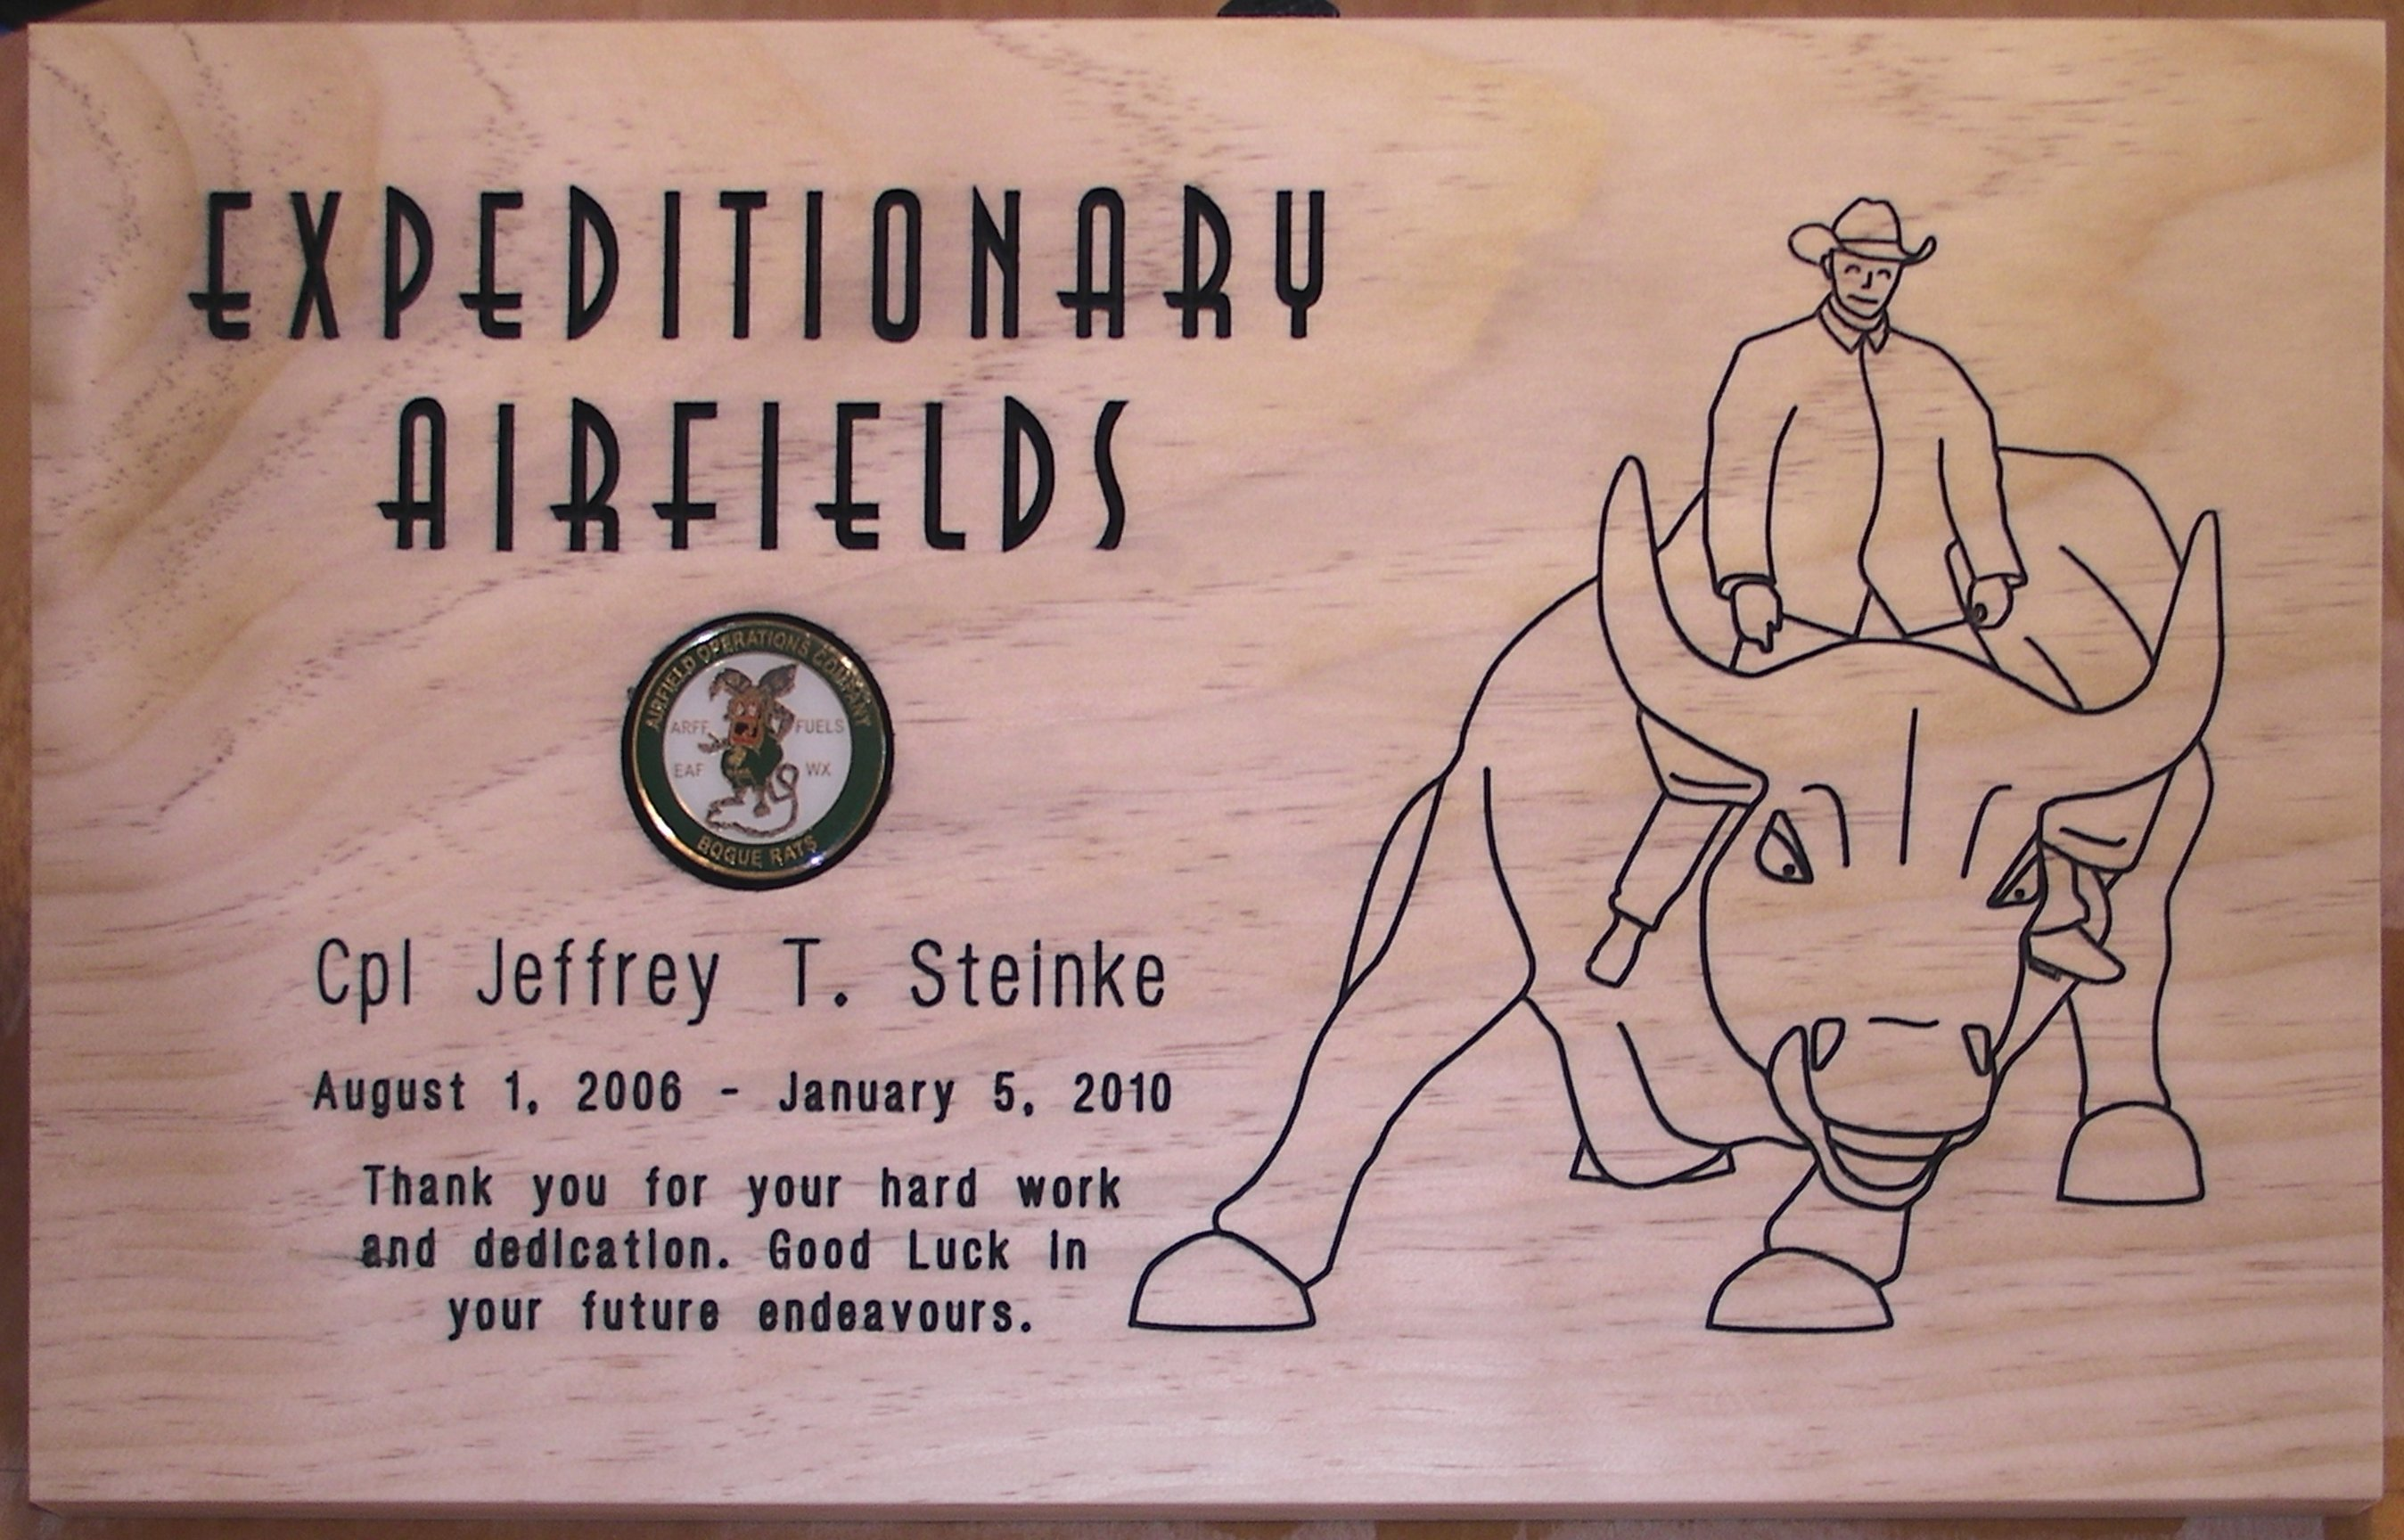 Another plaque with lineart from a picture of the Marine riding the Merrill Lynch Bull in New York City.